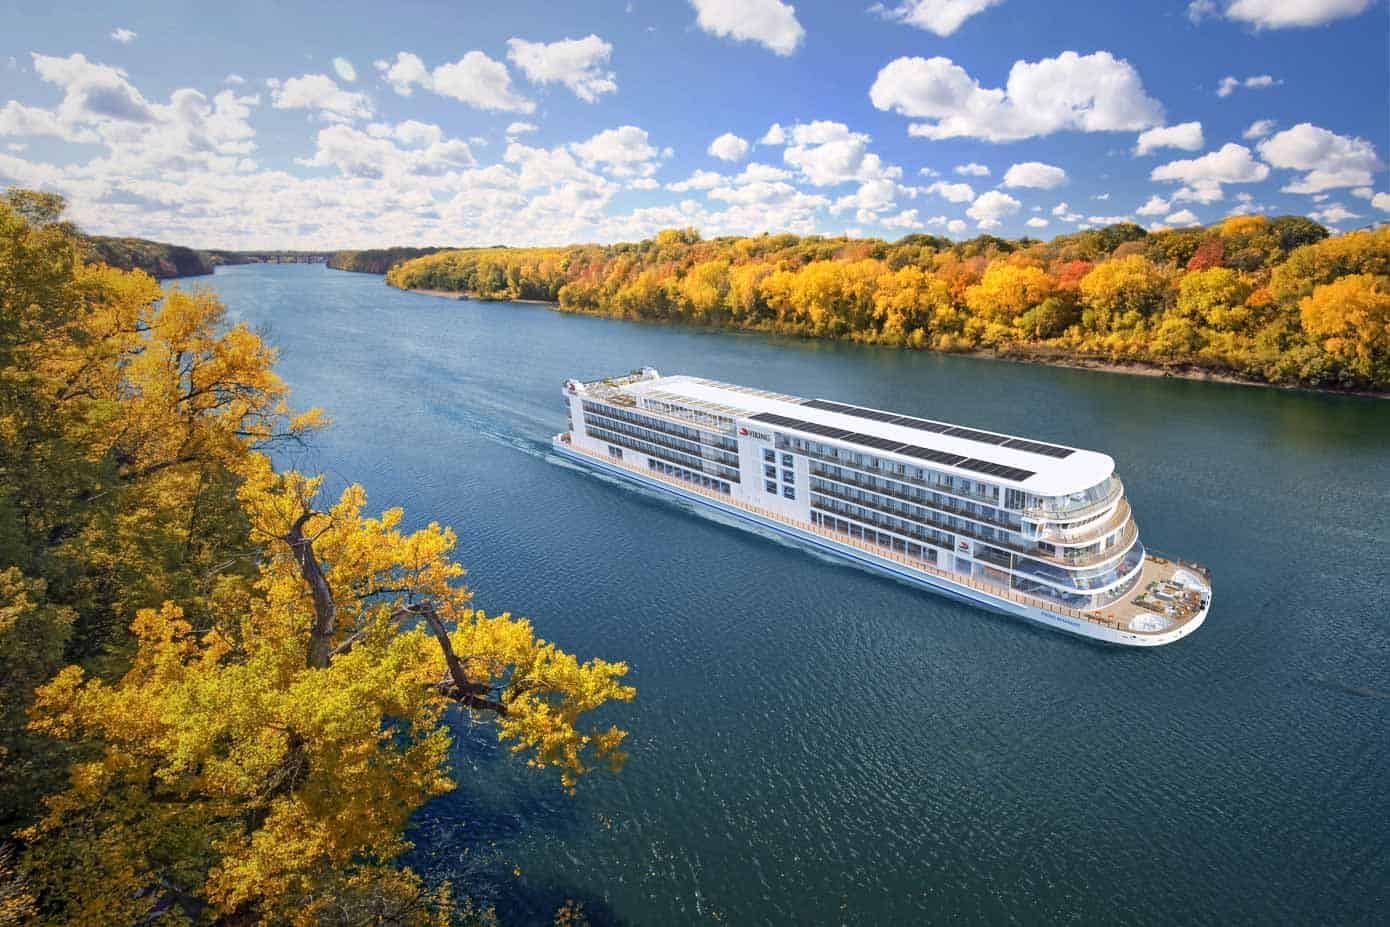 River cruise ship sailing down the Mississippi river on an autumn day.